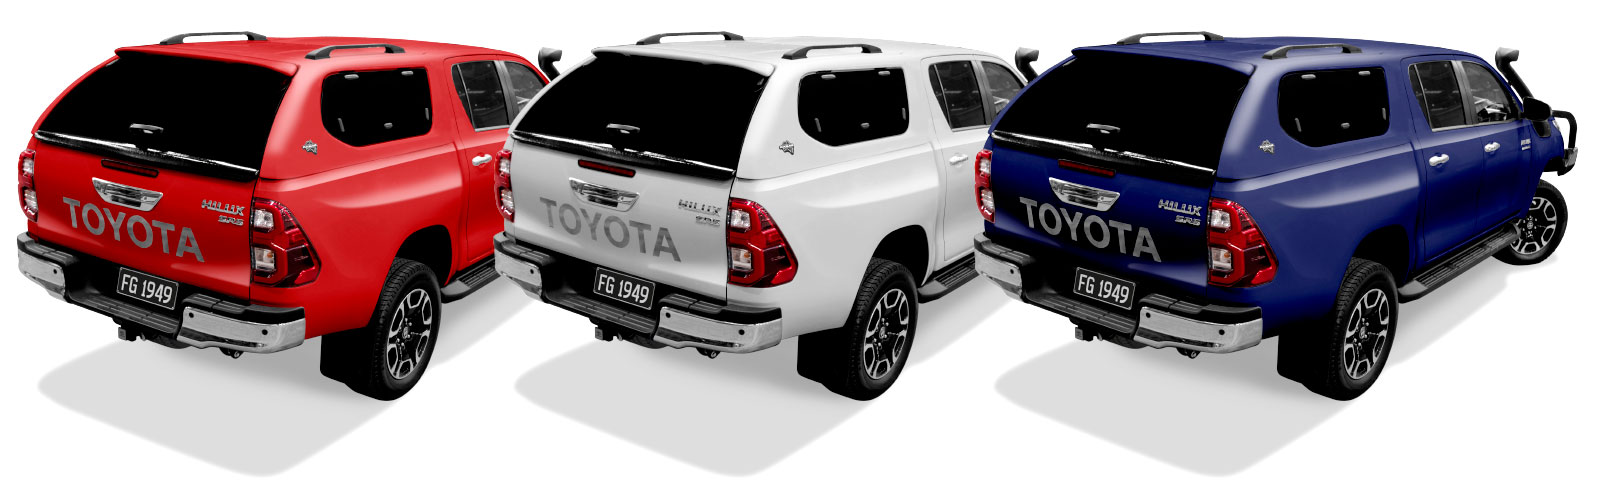 2020 Toyota Hilux Canopy Colour Options